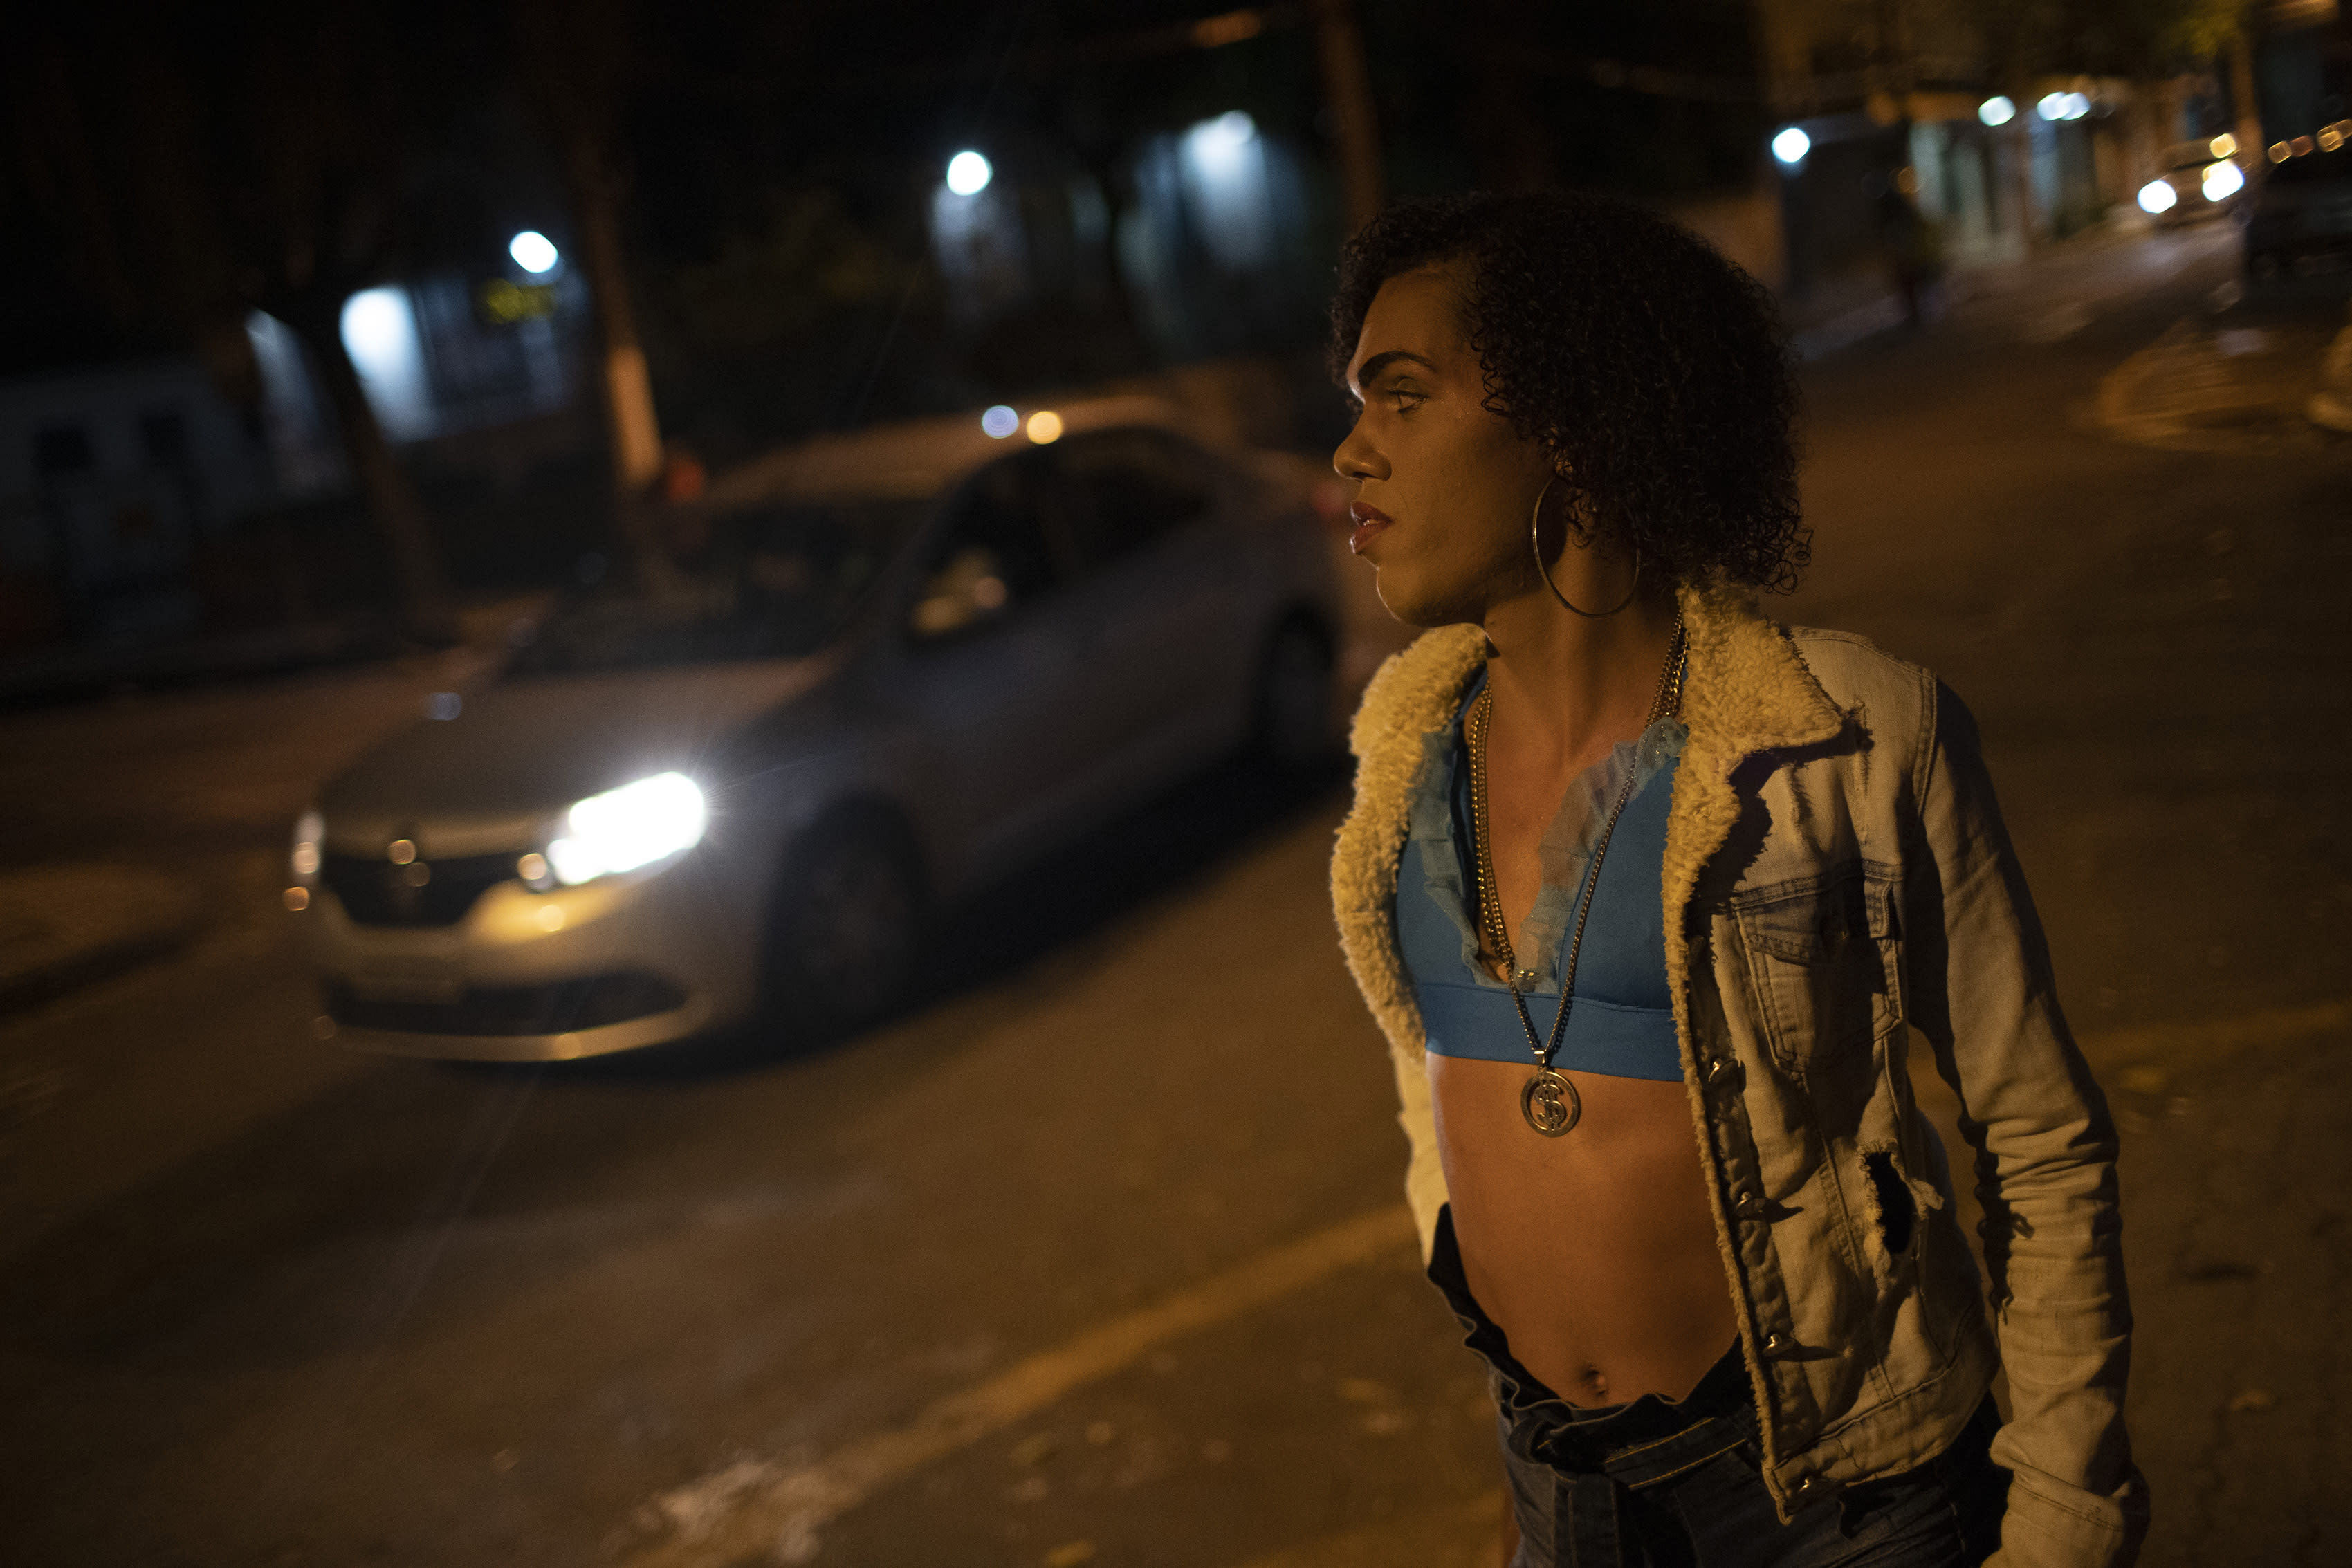 """Transgender sex worker Alice Larubia waits for customers in Niteroi, Brazil, Saturday, June 27, 2020, amid the new coronavirus pandemic. She keeps hand sanitizer in her purse and wears a mask on public transport, but said she can't while working. She earns around $15 per night, less than half her payday before the onset of the outbreak. """"I'm scared,"""" she said. """"I know I'm at risk."""" (AP Photo/Silvia Izquierdo)"""